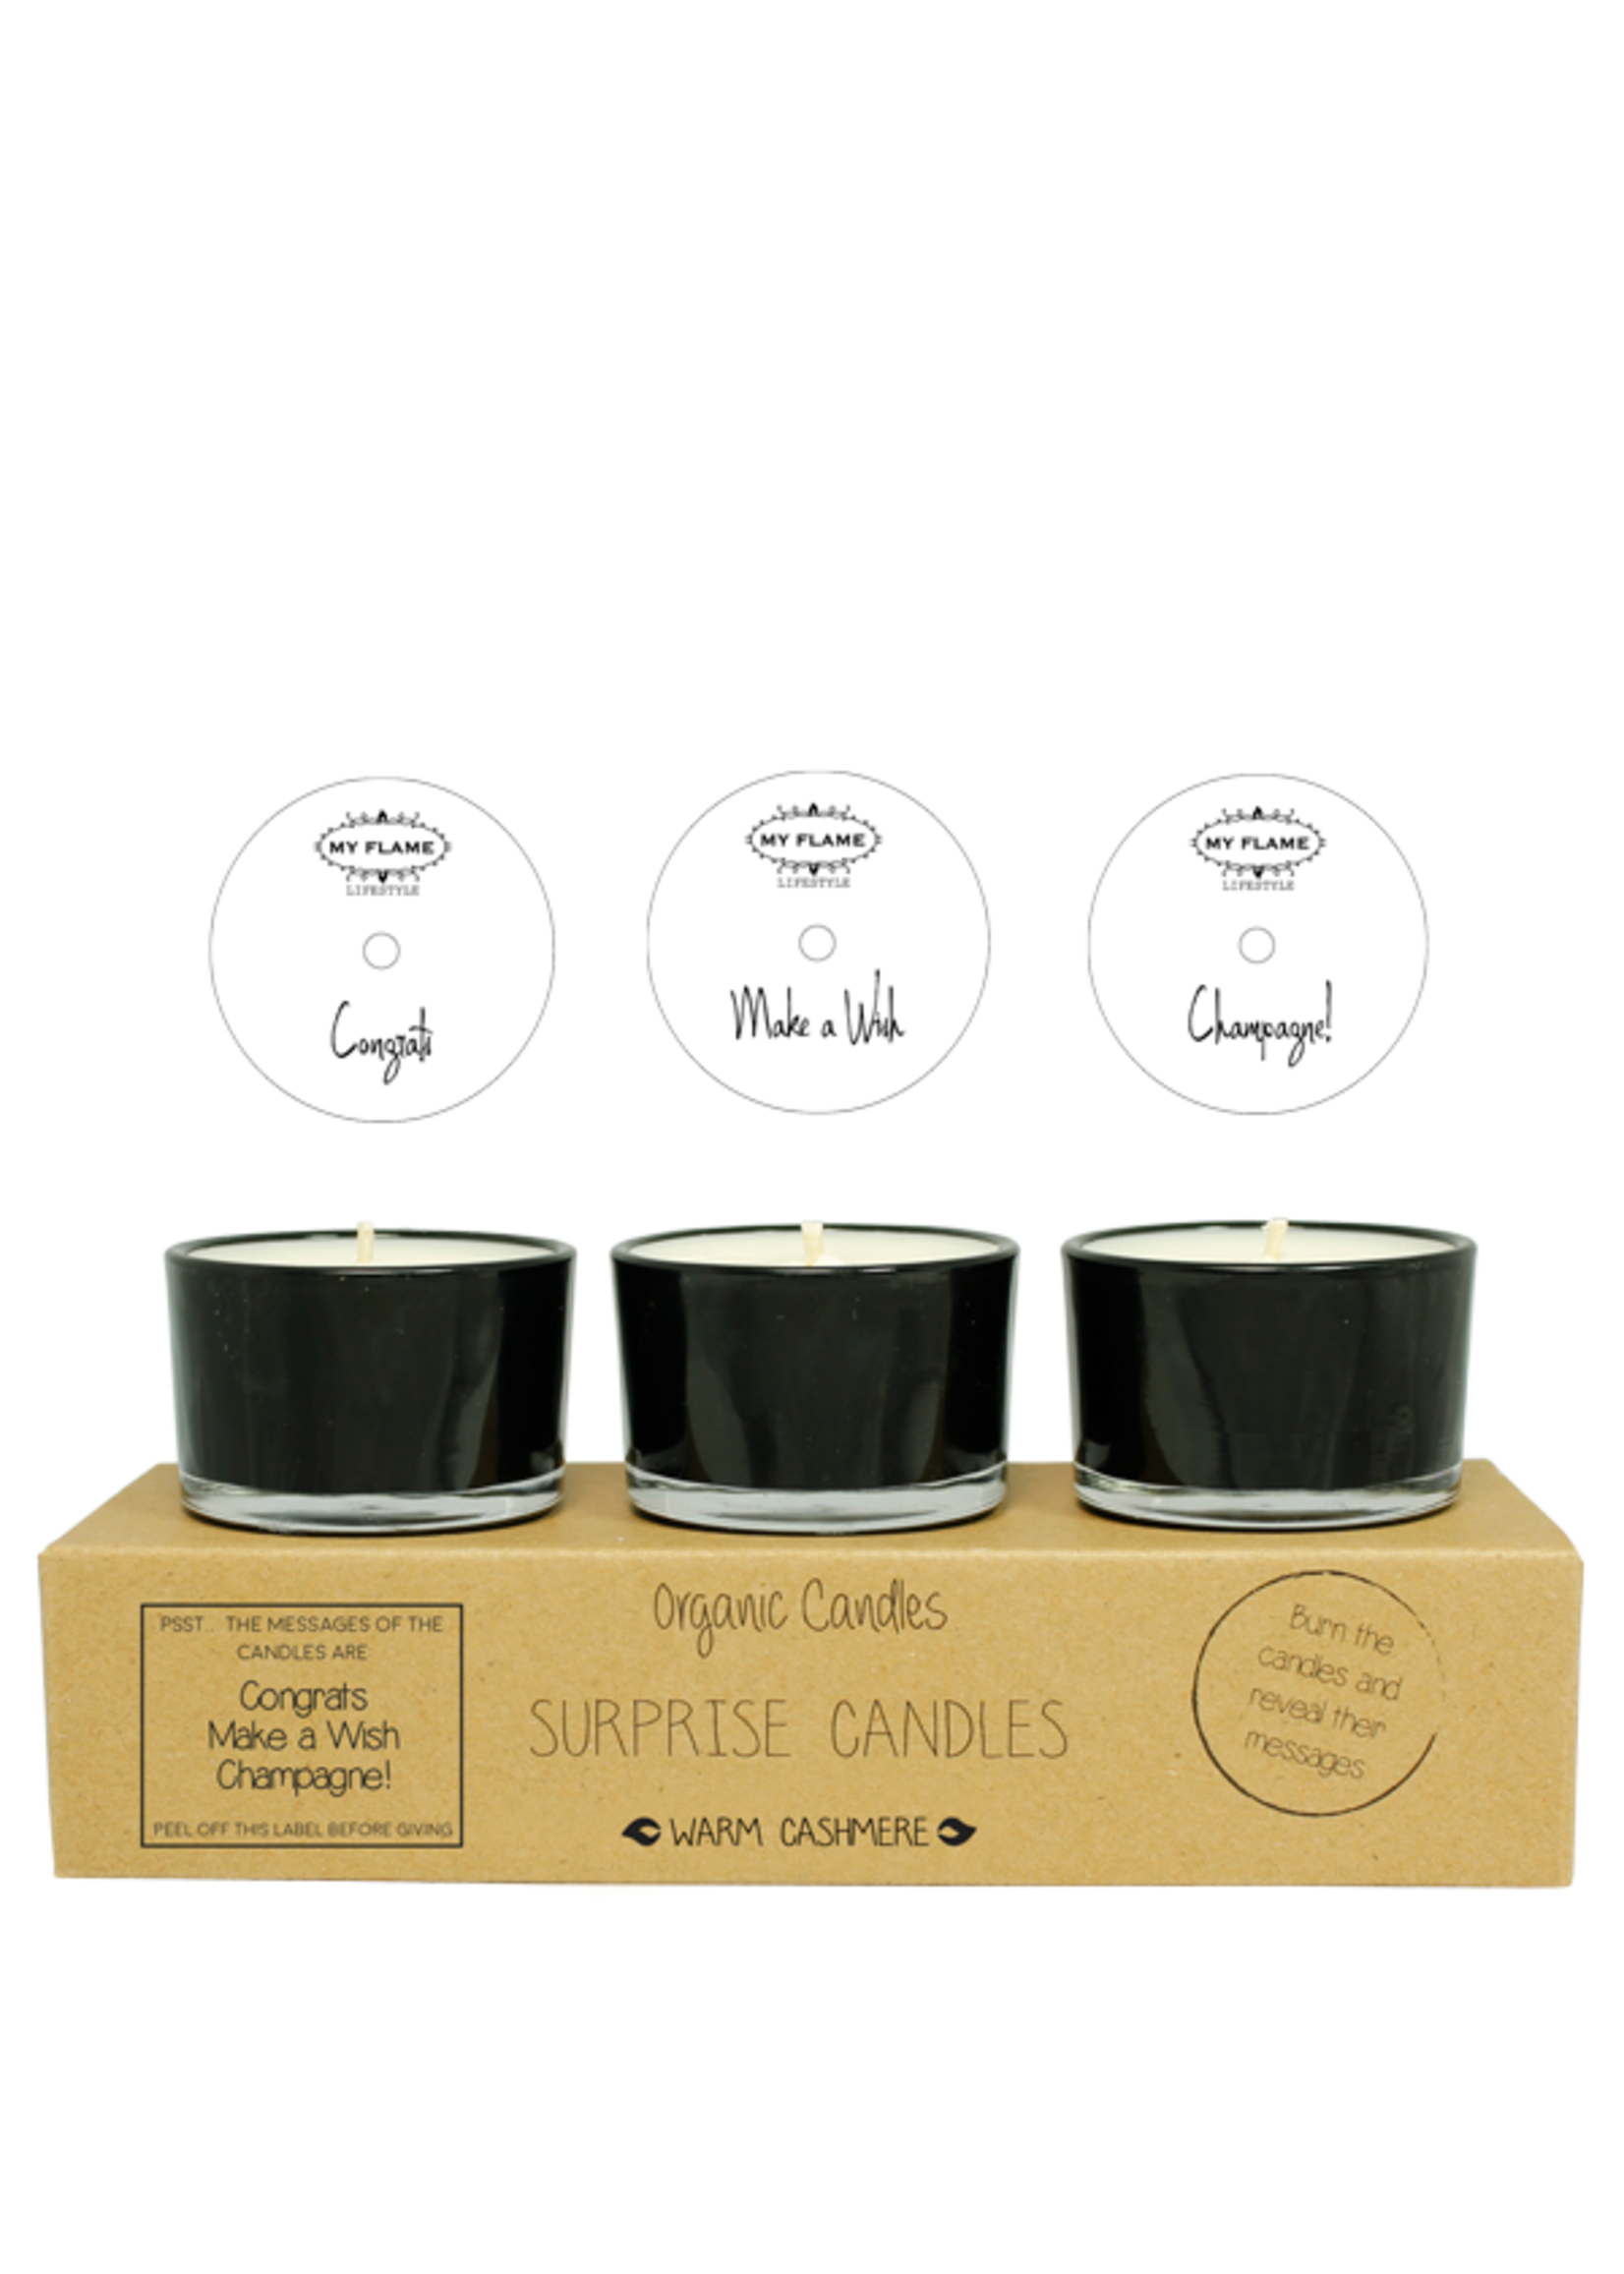 My Flame Surprise soy candles Black -Congratz, Champagne, Make a wish!